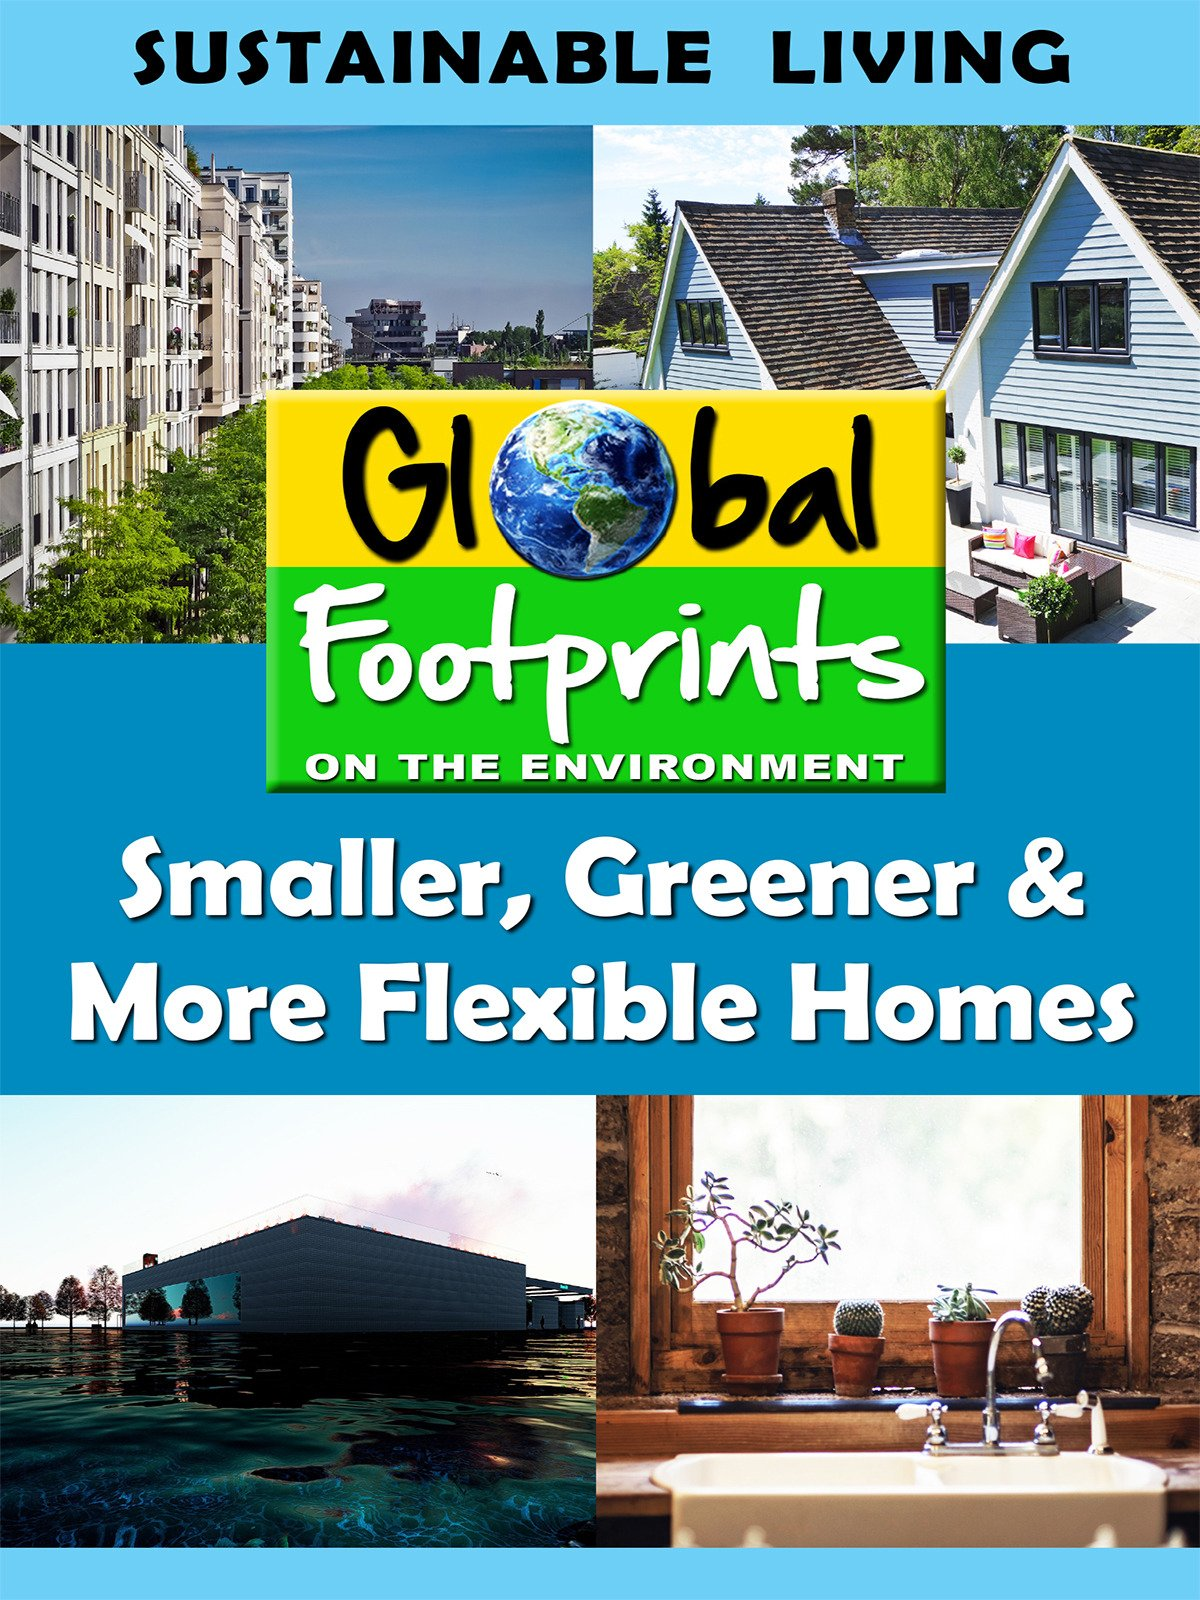 Global Footprints - Smaller, Greener, More Flexible Homes & Water Conservation by